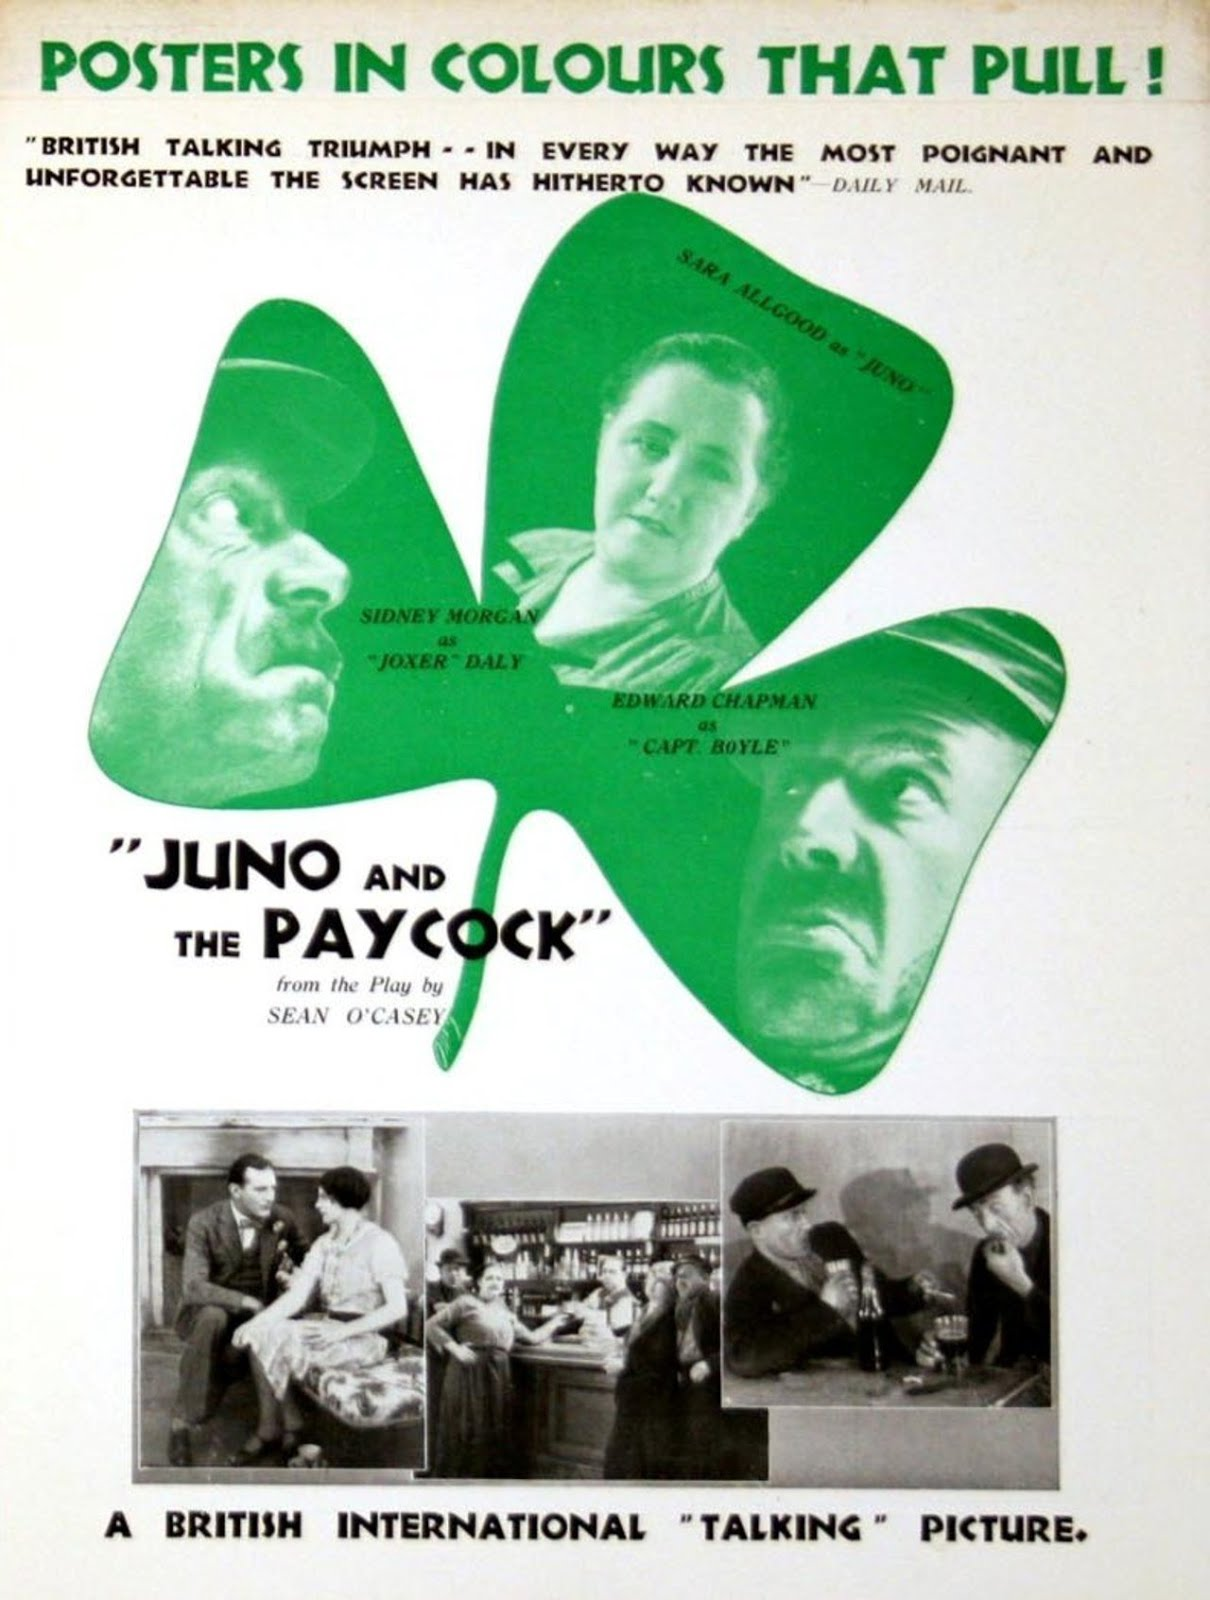 Juno and the Paycock (1930, dir. Alfred Hitchcock) UK pressbook rear